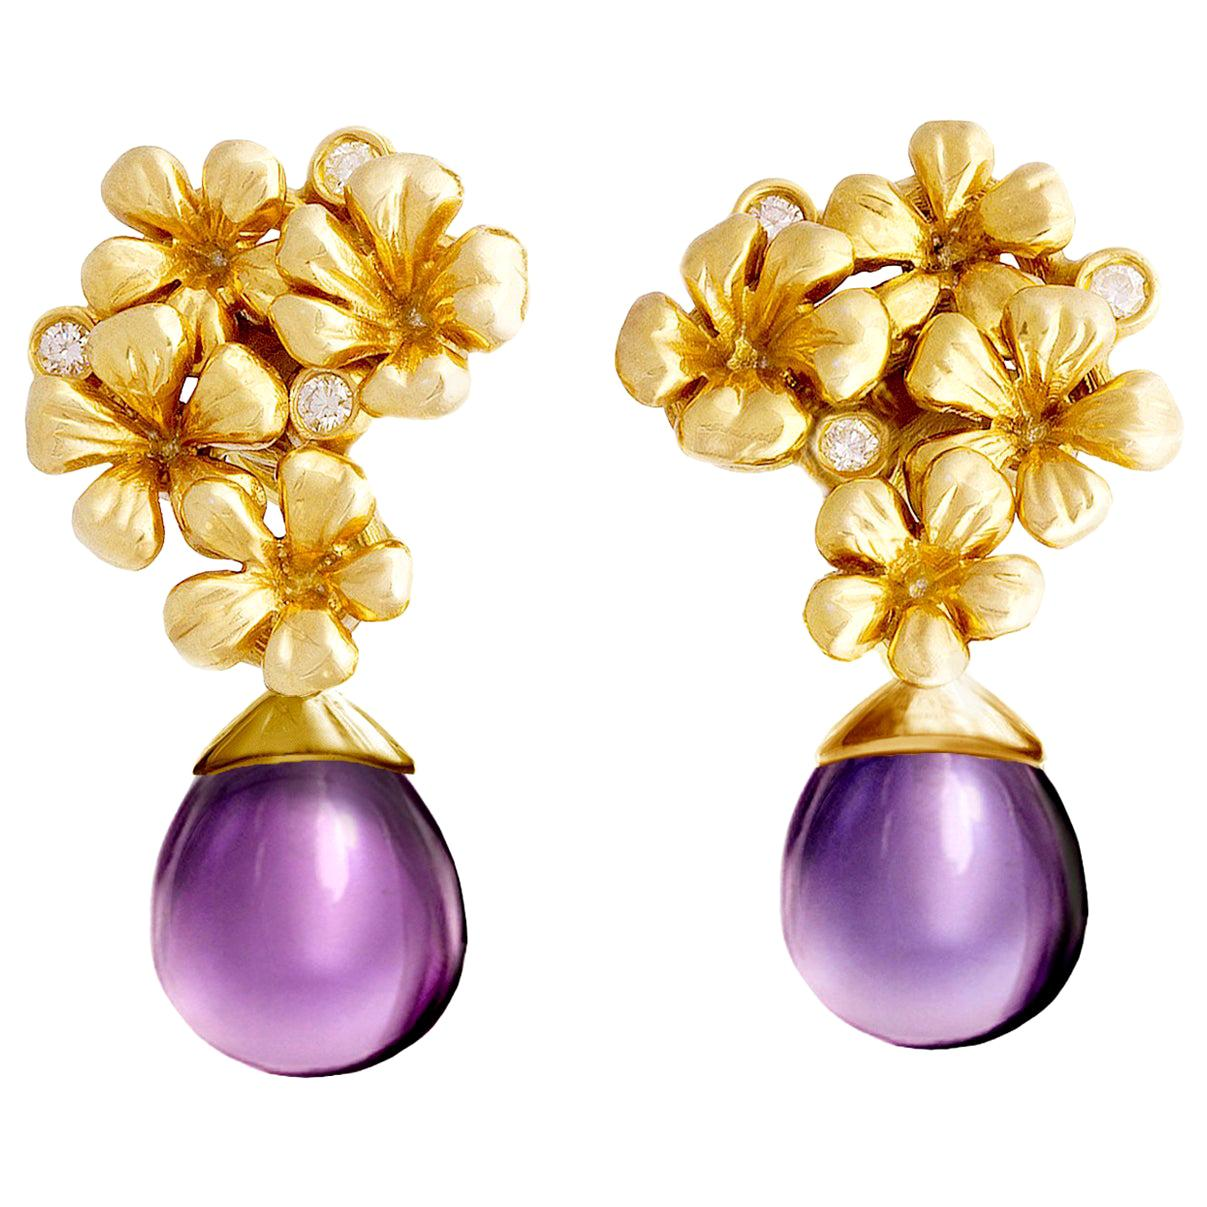 14 Kt Gold Plum Flowers Contemporary Clip-On Earrings with 6 Round Diamonds